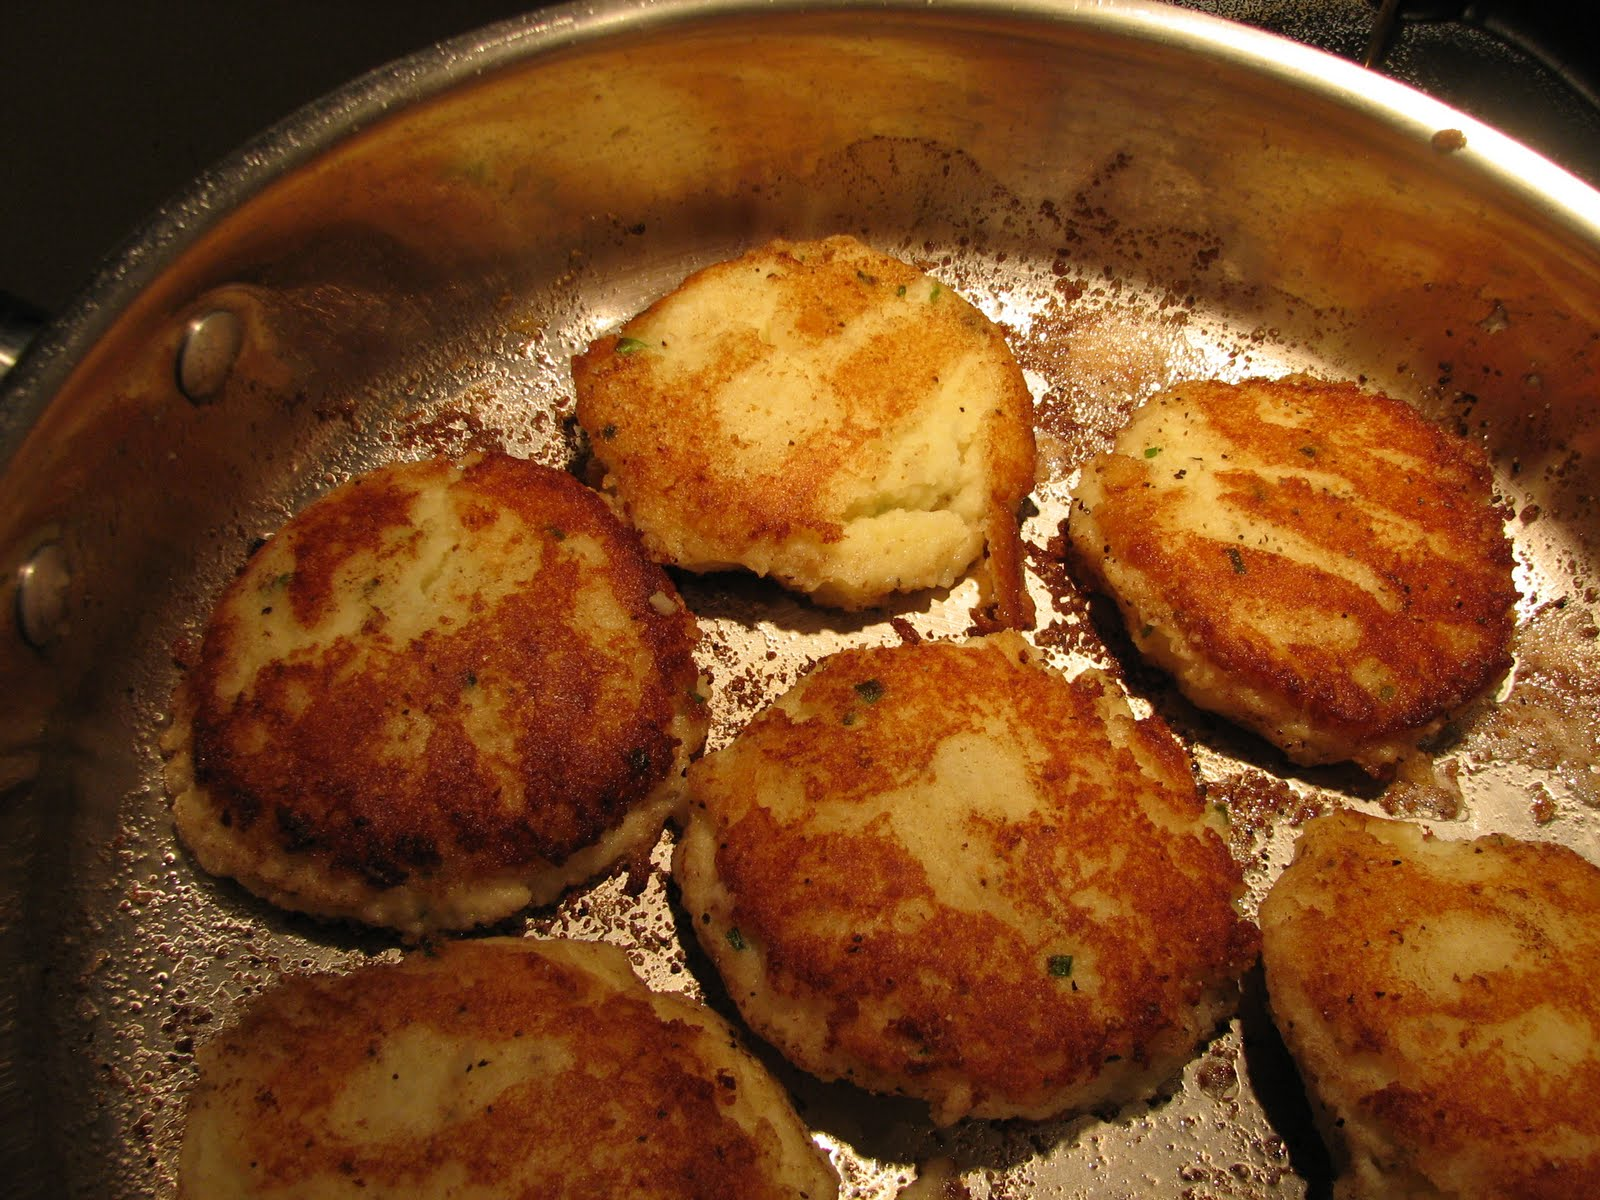 ... Mashed Potato Cakes (what to do with those leftover mashed potatoes